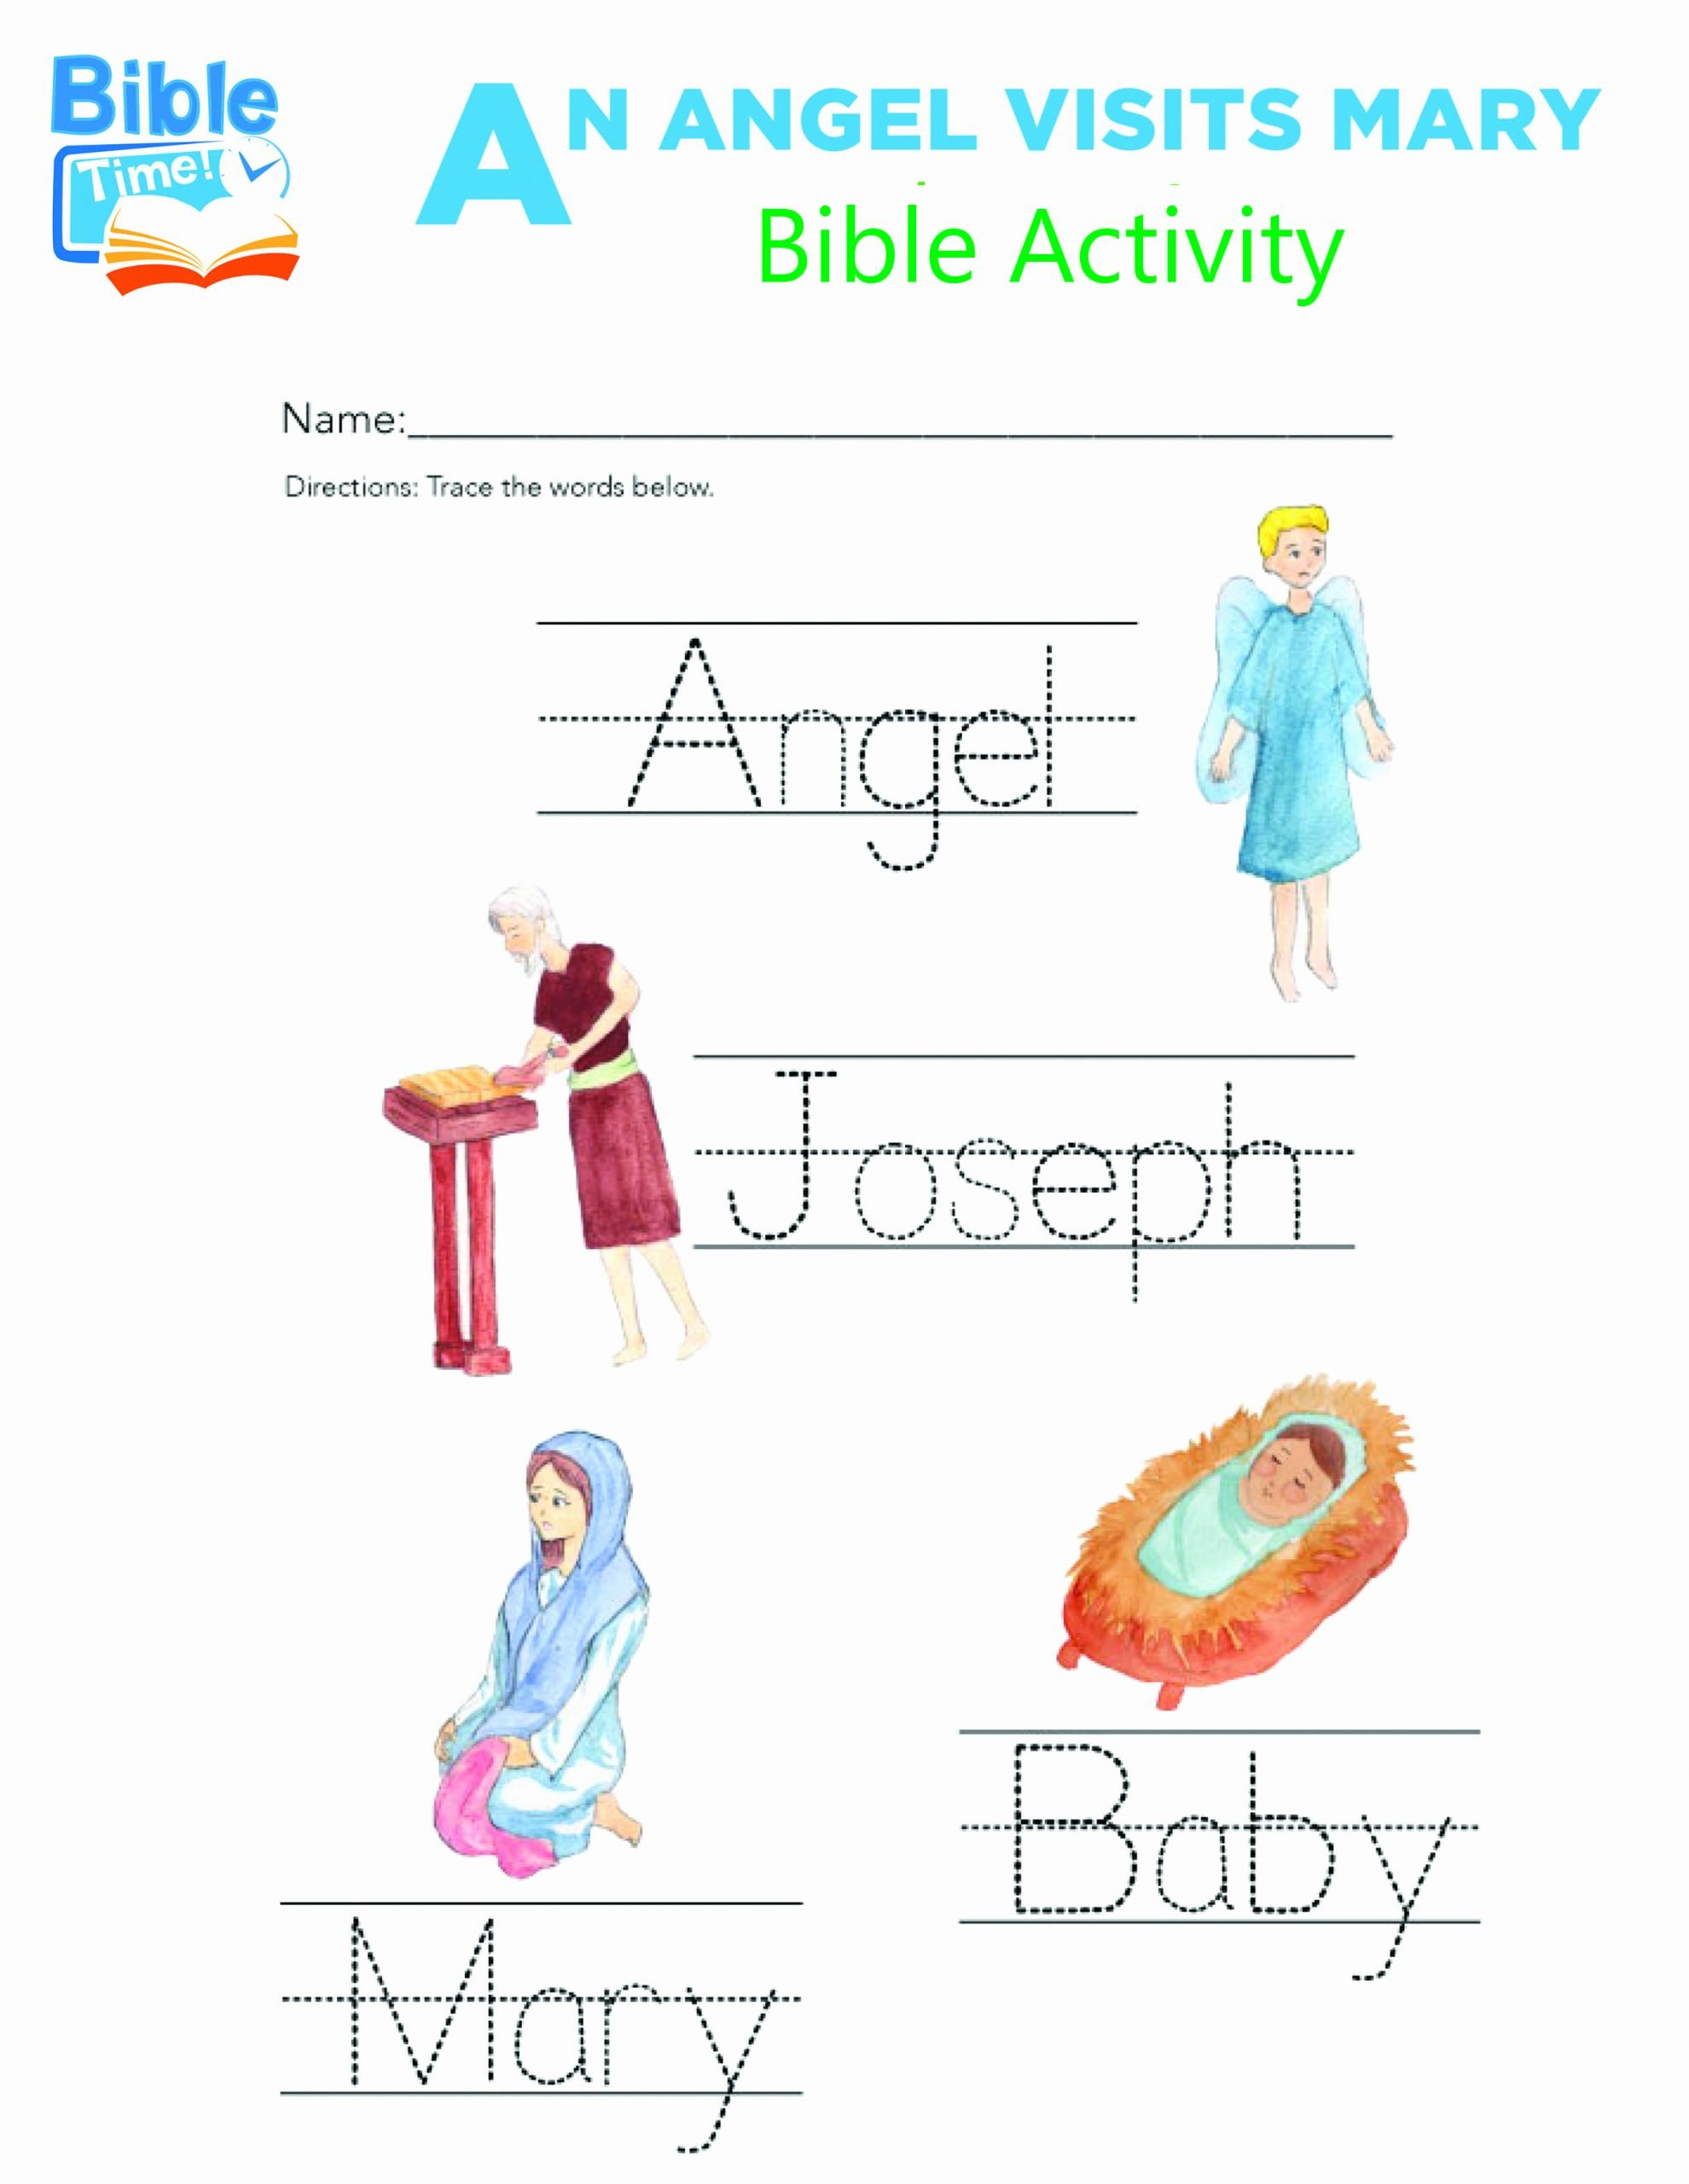 Bible Story Worksheets for Preschoolers Unique Free Preschool Bible Activities